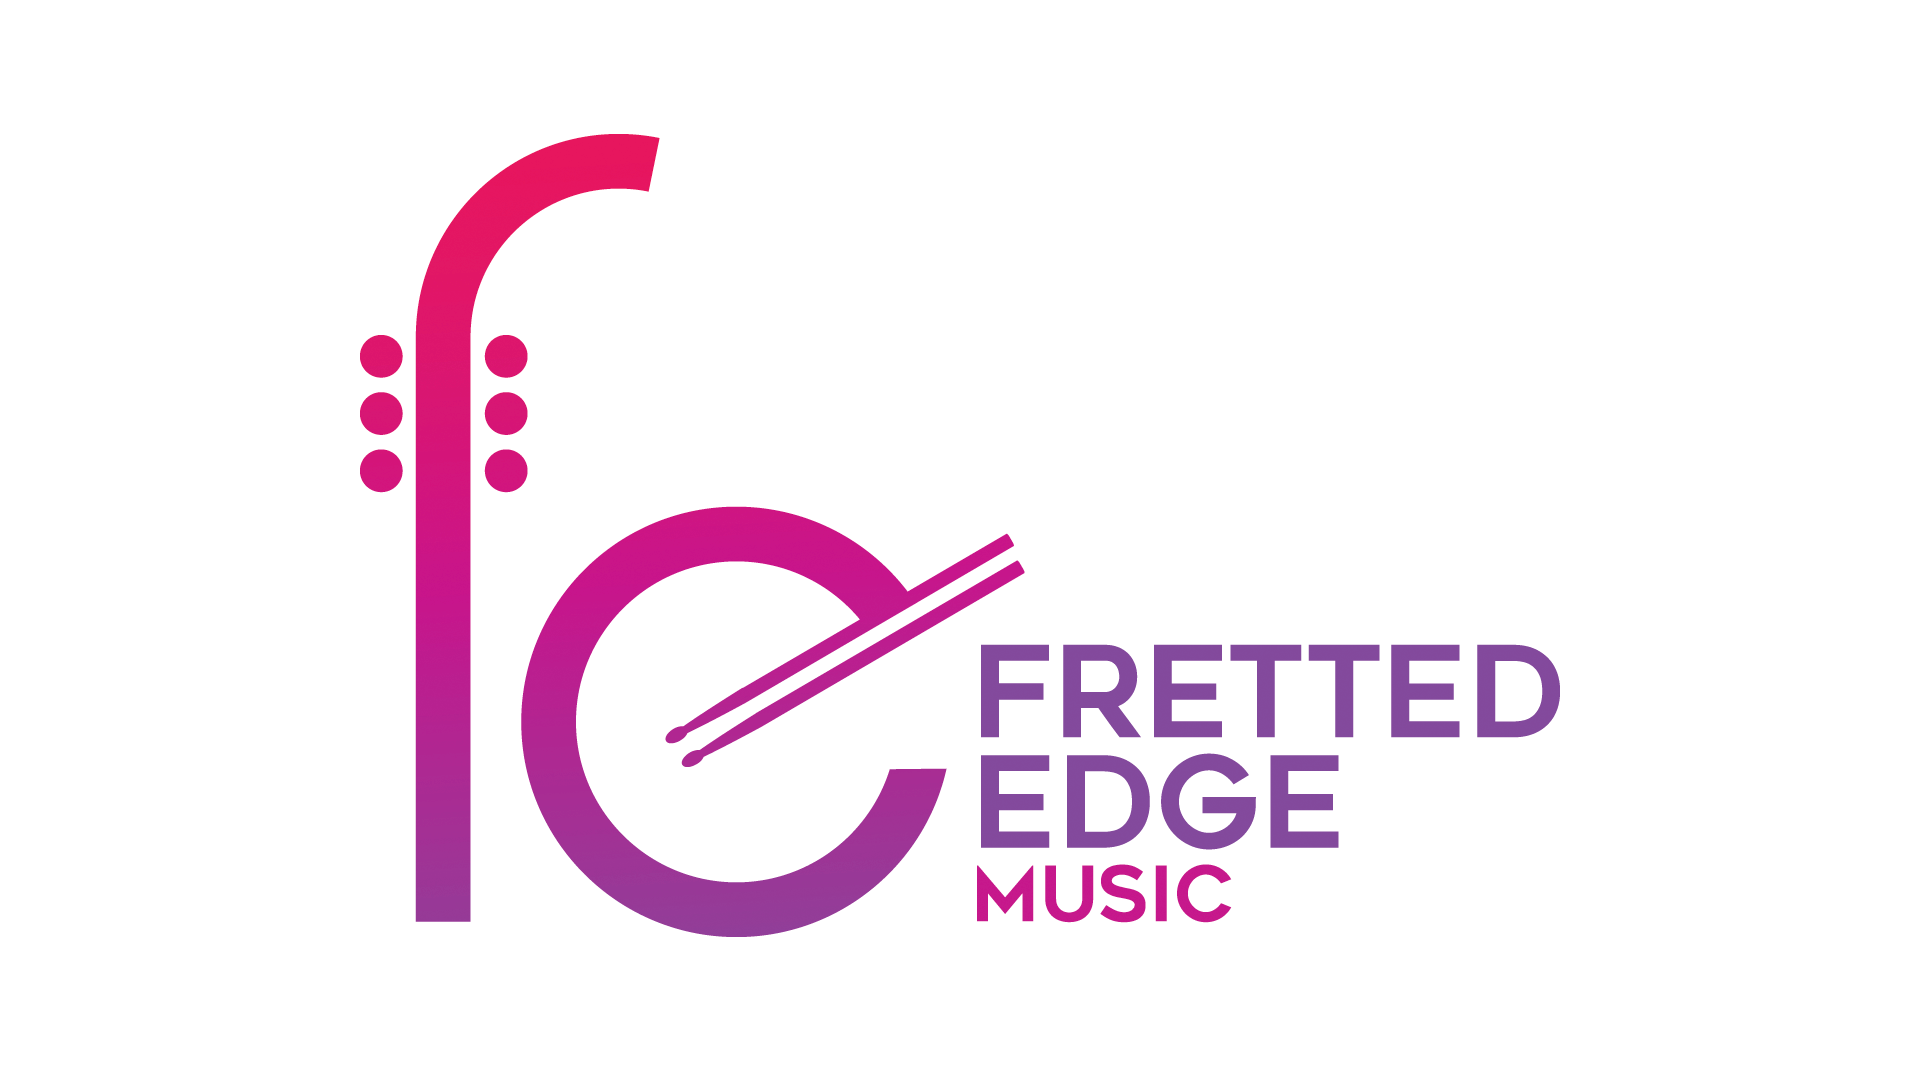 Fretted Edge Music